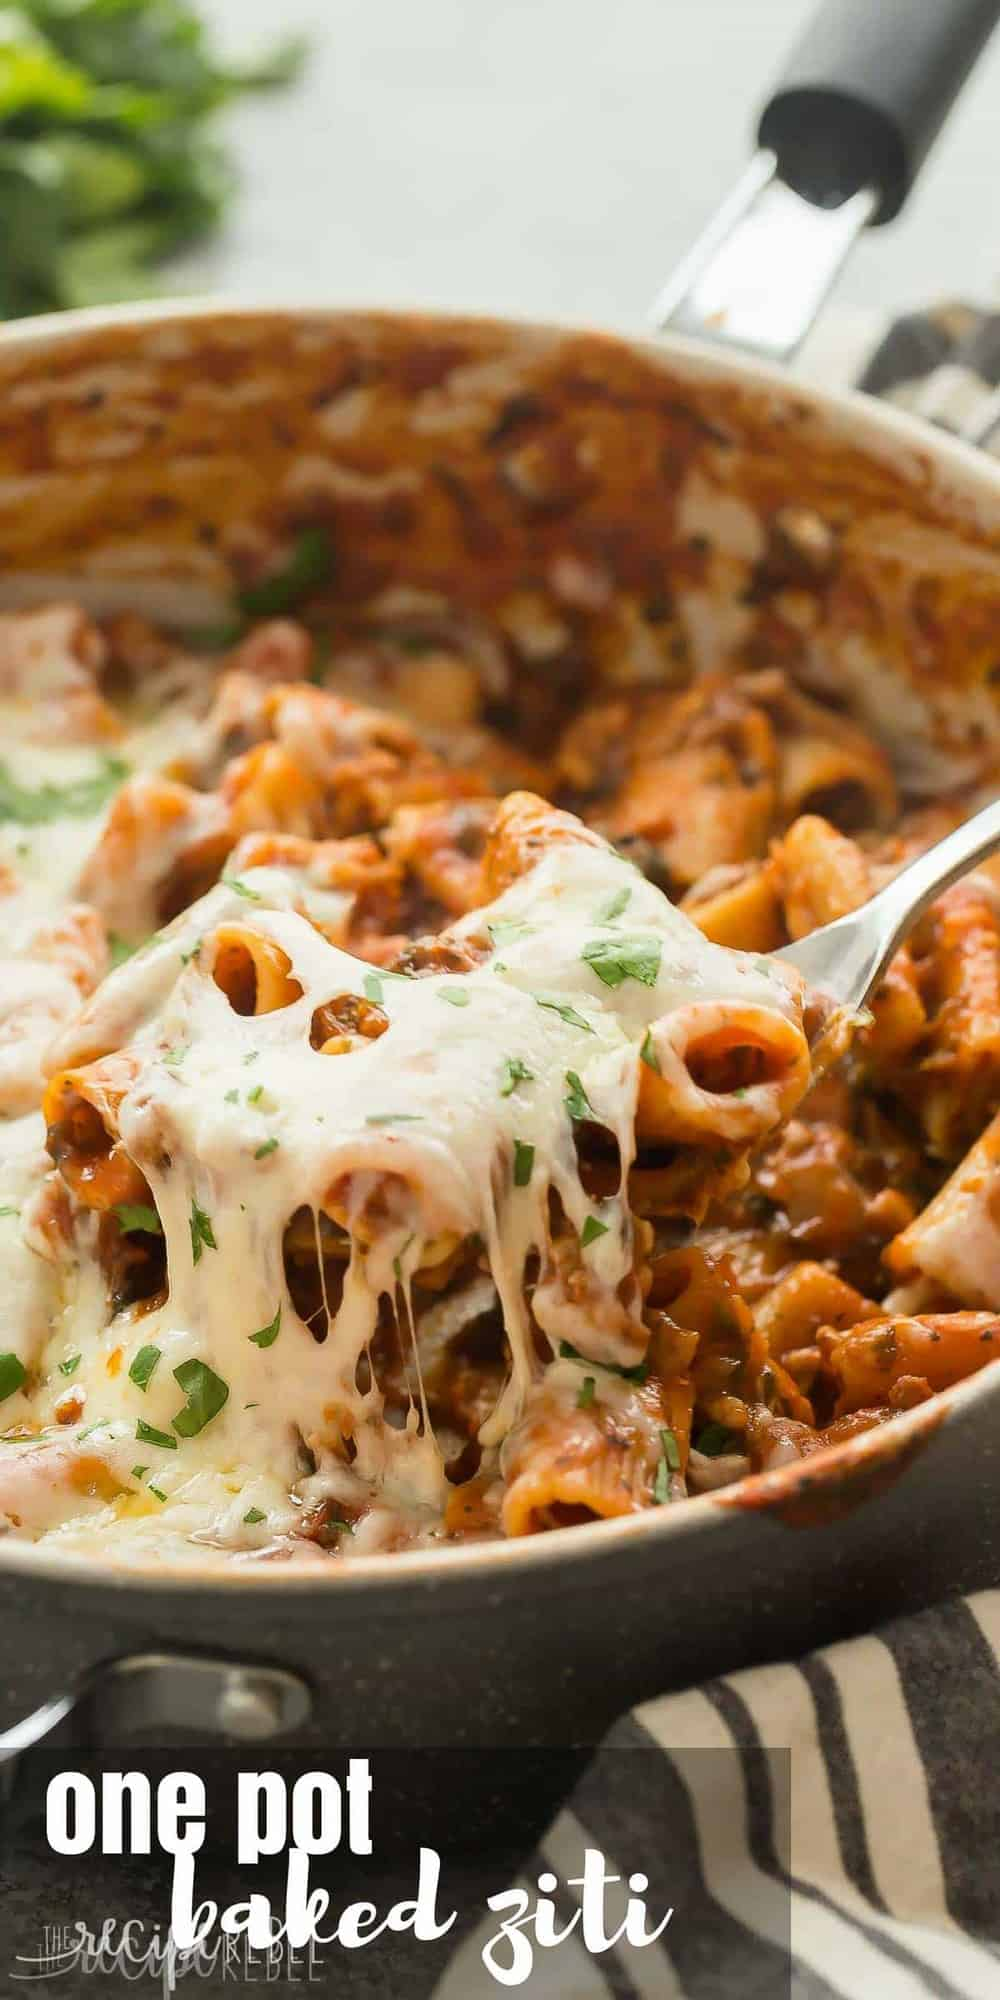 One pot baked ziti with italian sausage recipe video this one pot baked ziti with italian sausage is full of flavor but easy on the forumfinder Choice Image